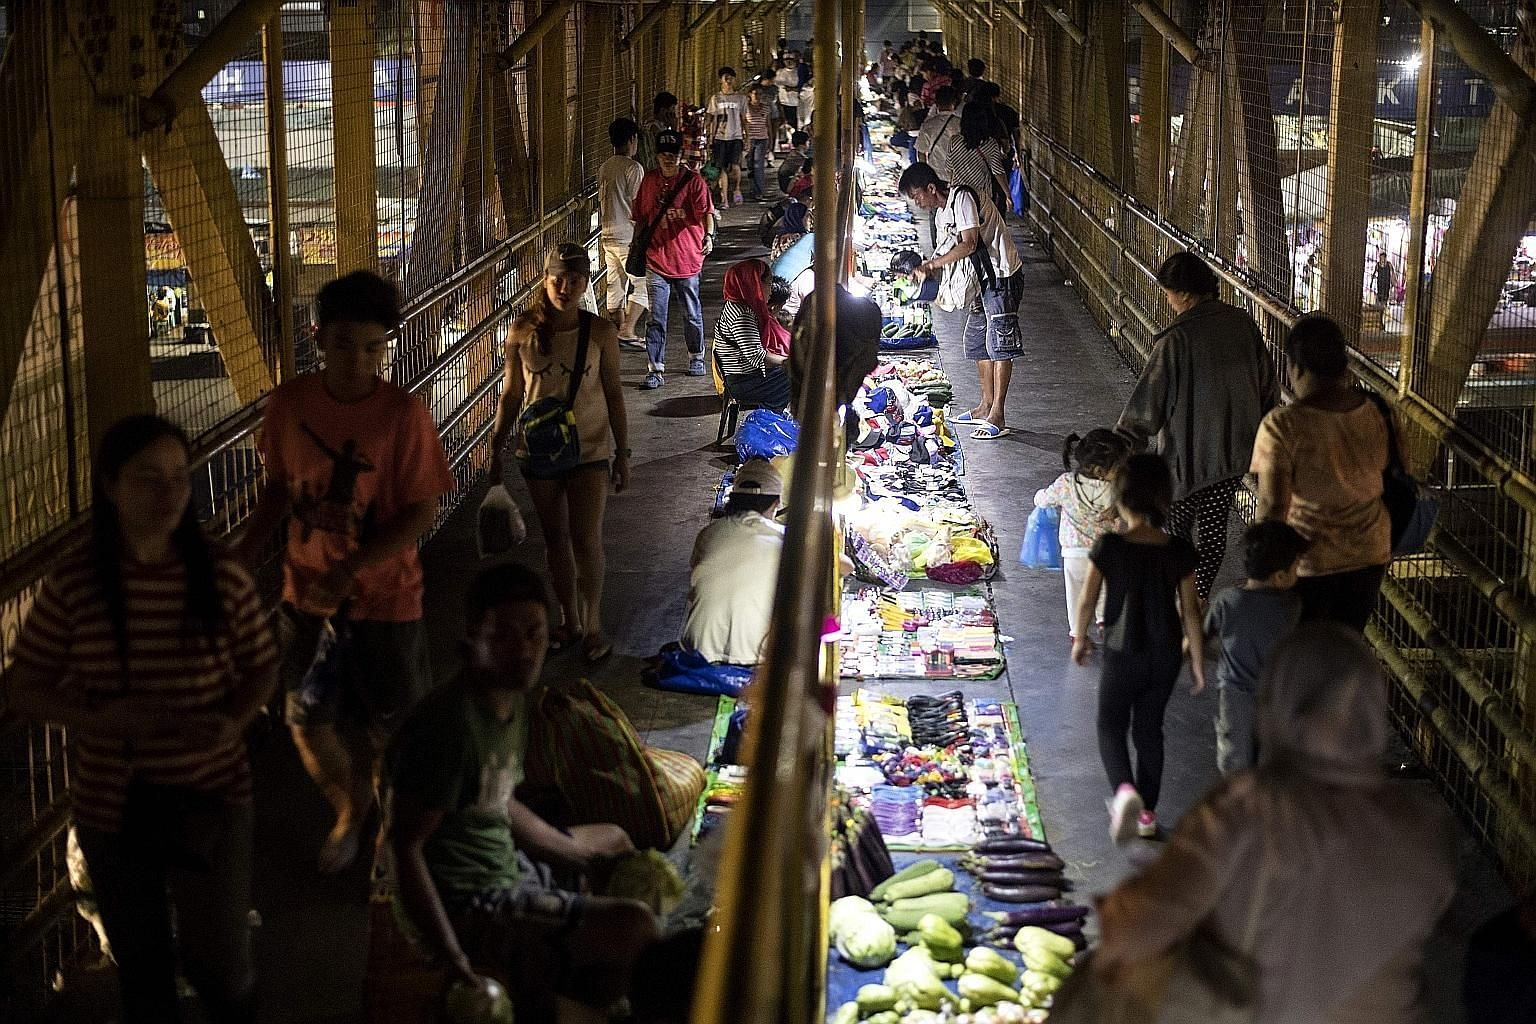 Food vendors in Manila. Philippine government figures show prices of rice, corn, fish, alcohol, tobacco and fuel have risen.